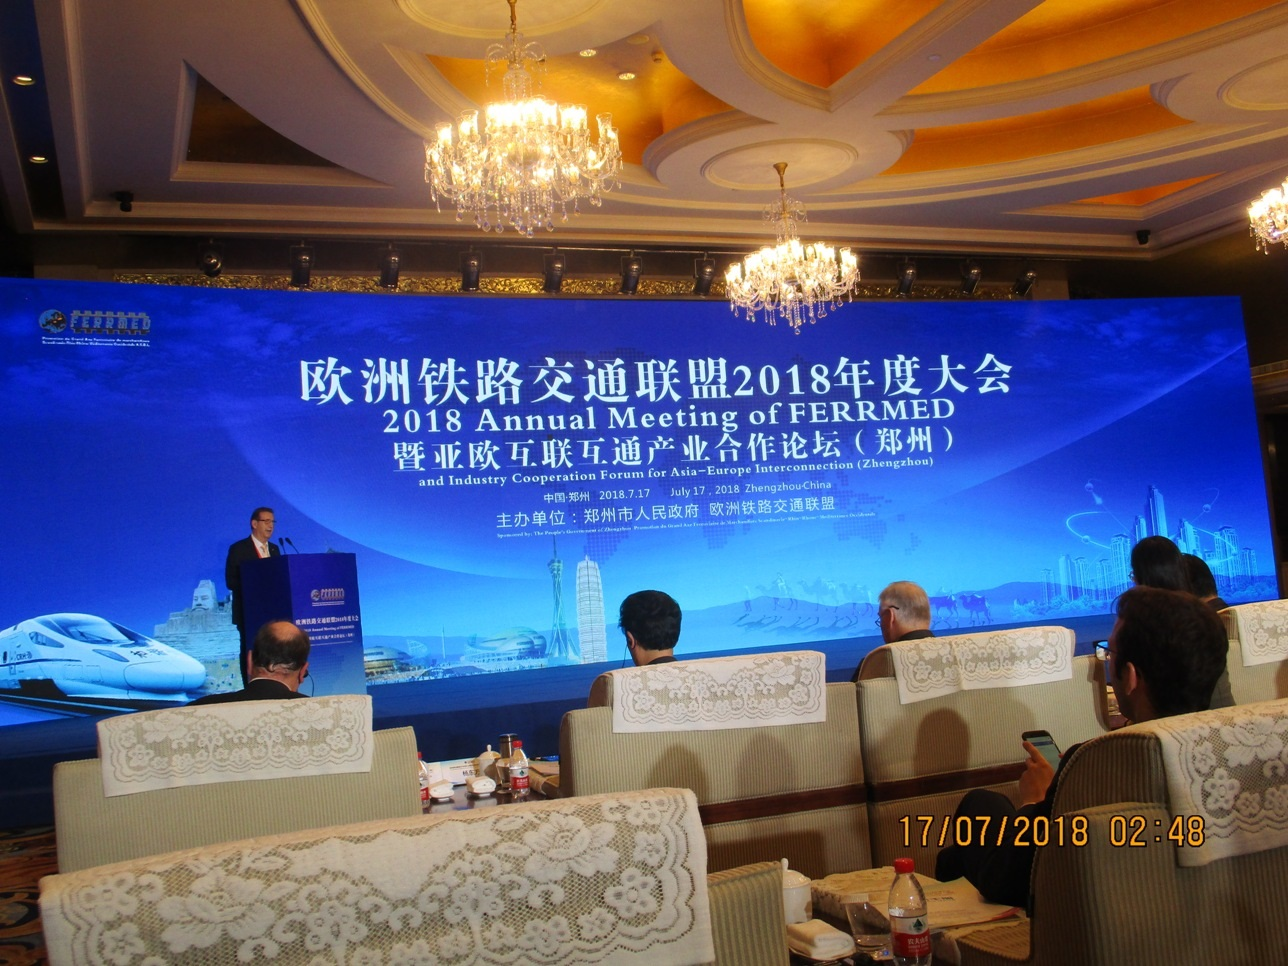 Speech from Tomas Expeditions to the conference that Ferrmed do in Zhengzhou ( China)